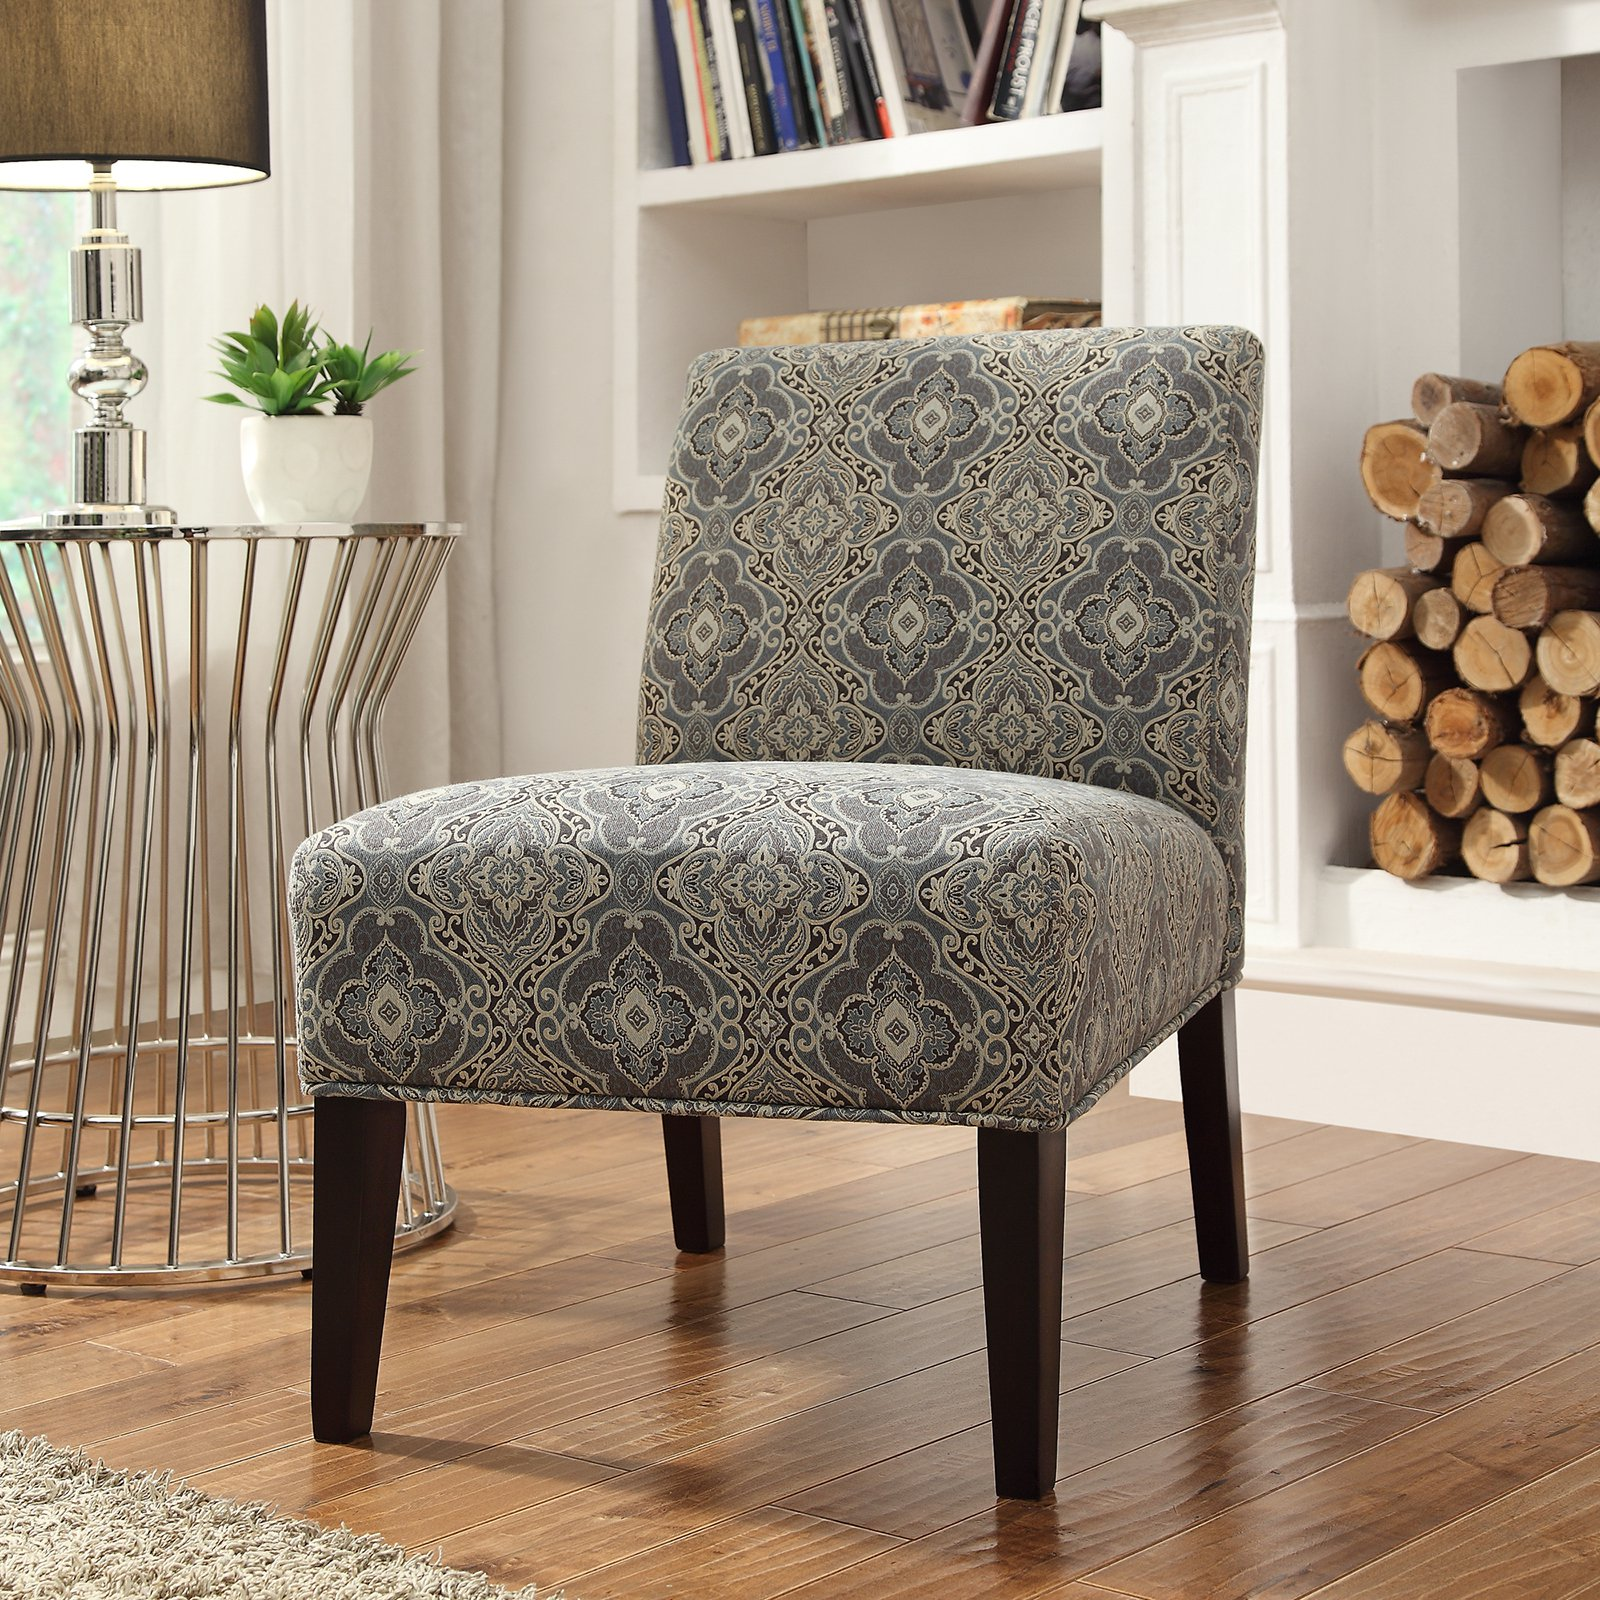 Weston Home Blue Print Fabric Lounger Chair - Rich Espresso